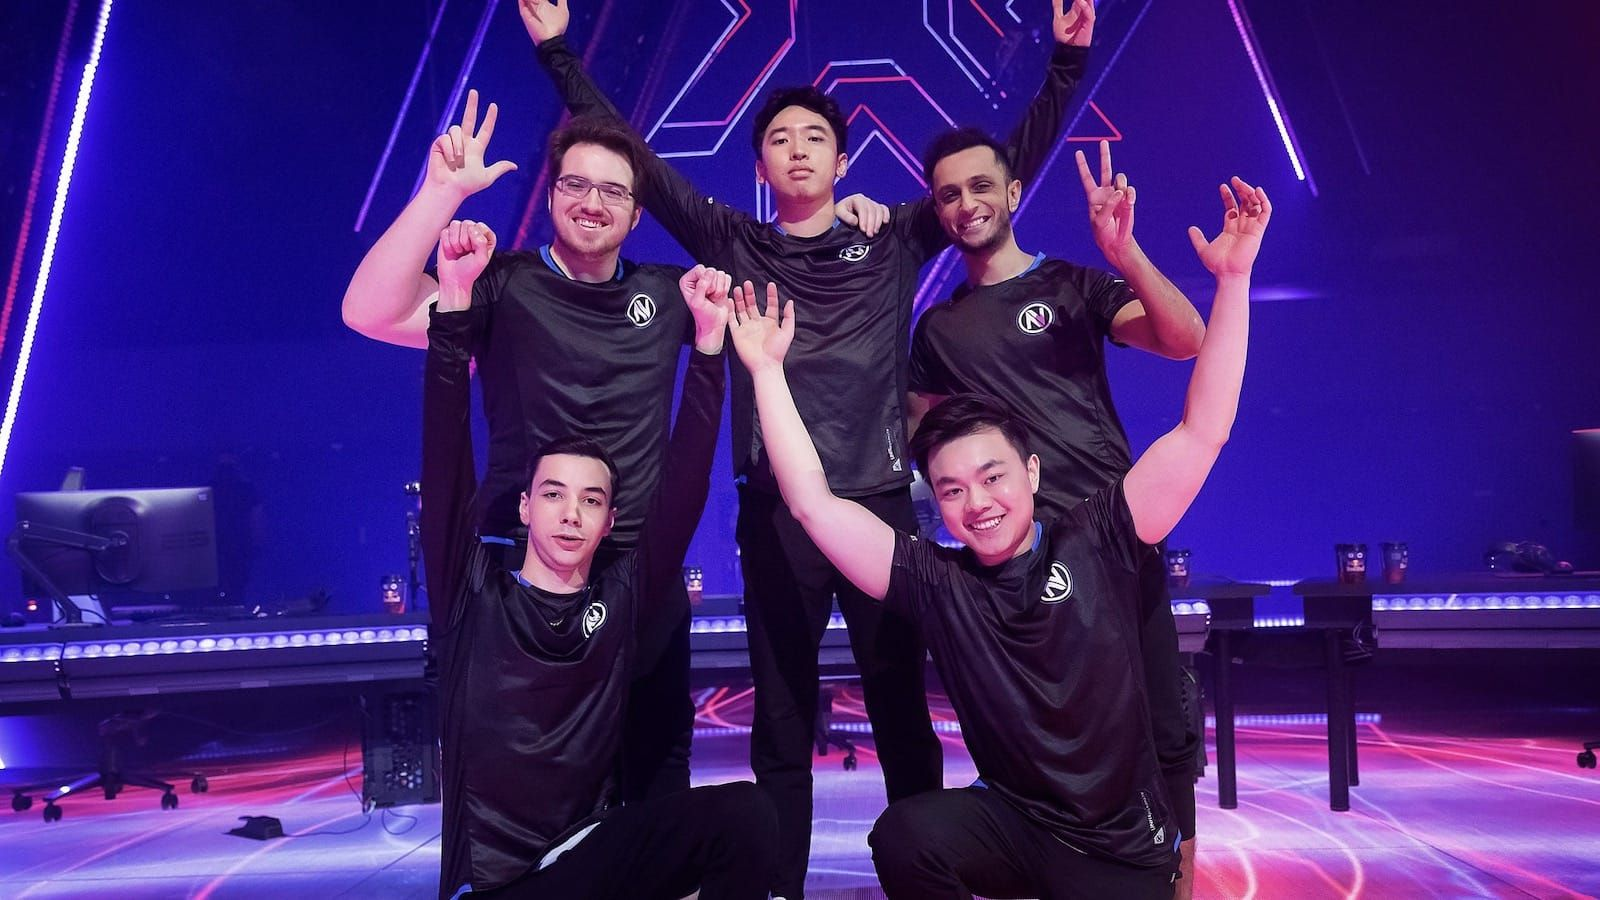 Envy Valorant team pose with arms raised on stage after win at Masters Berlin